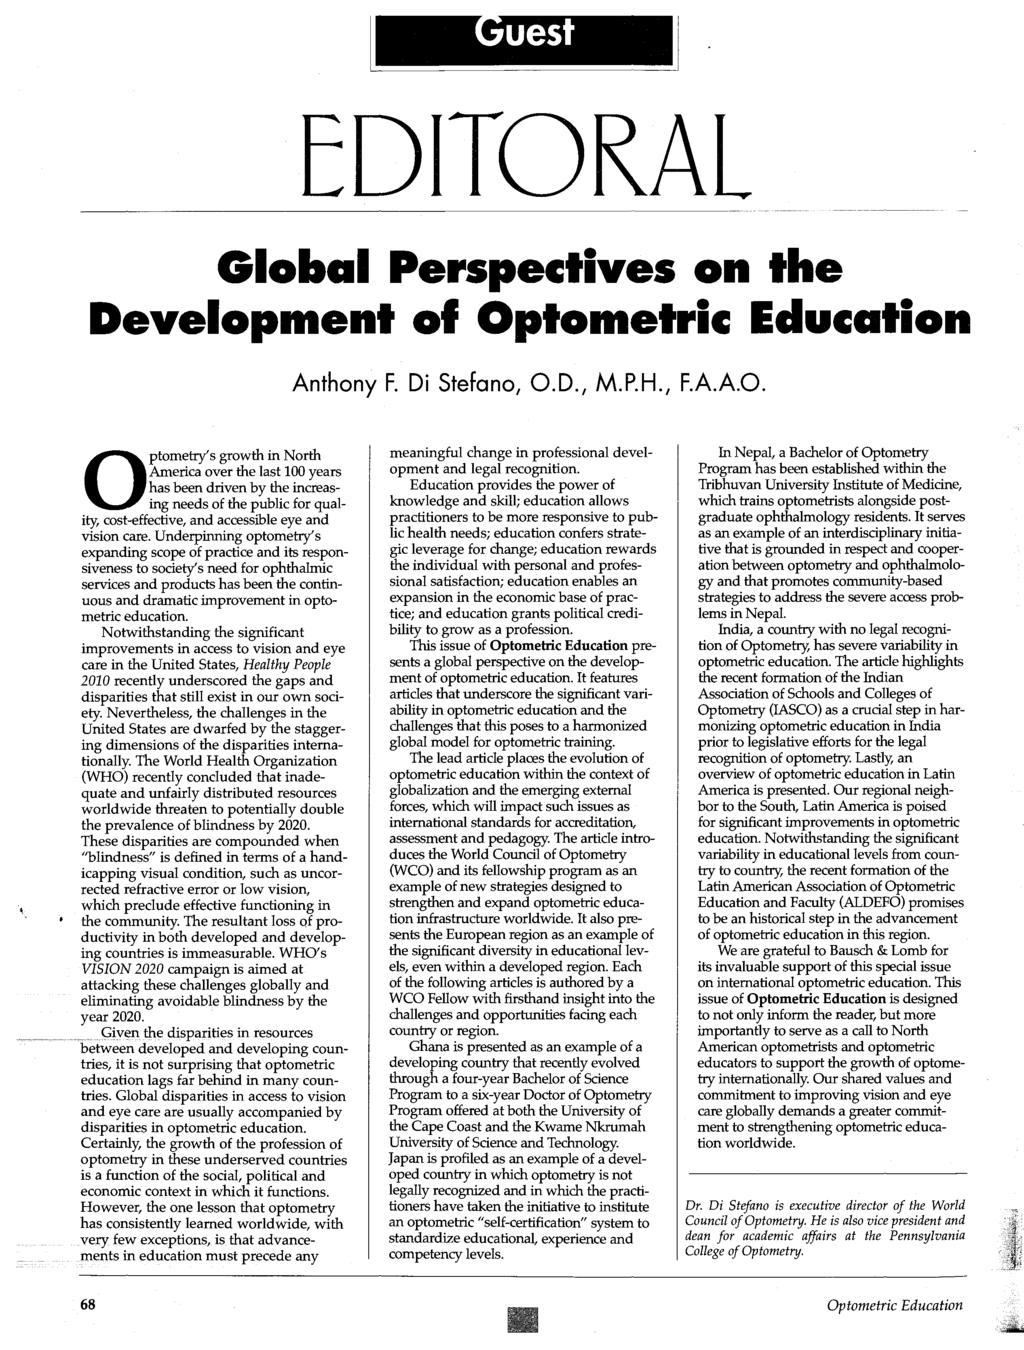 EDITORA Global Perspectives on the Development of Optometric Education Anthony F. Di Stefano, O.D., M.P.H., F.A.A.O. Optometry's growth in North America over the last 100 years has been driven by the increasing needs of the public for quality, cost-effective, and accessible eye and vision care.